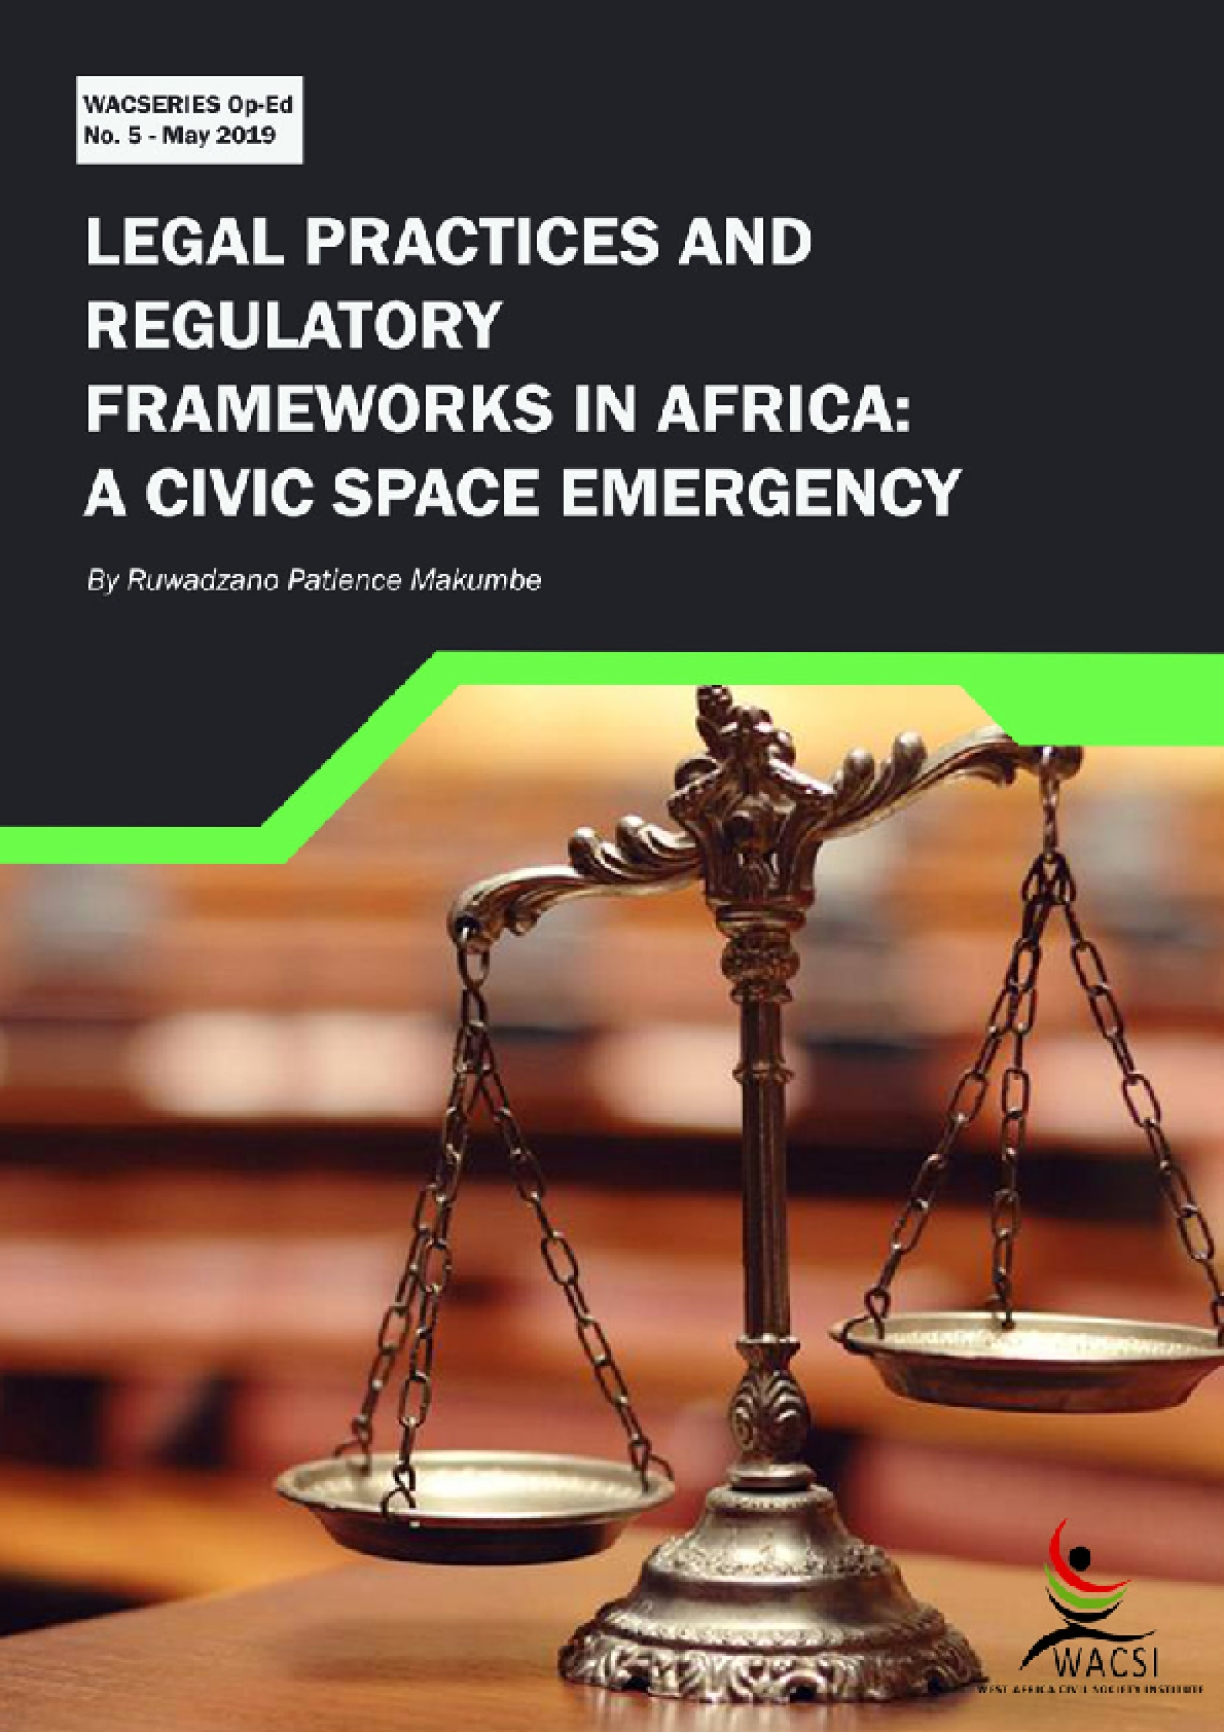 Legal Practices and Regulatory Frameworks In Africa: A Civic Space Emergency